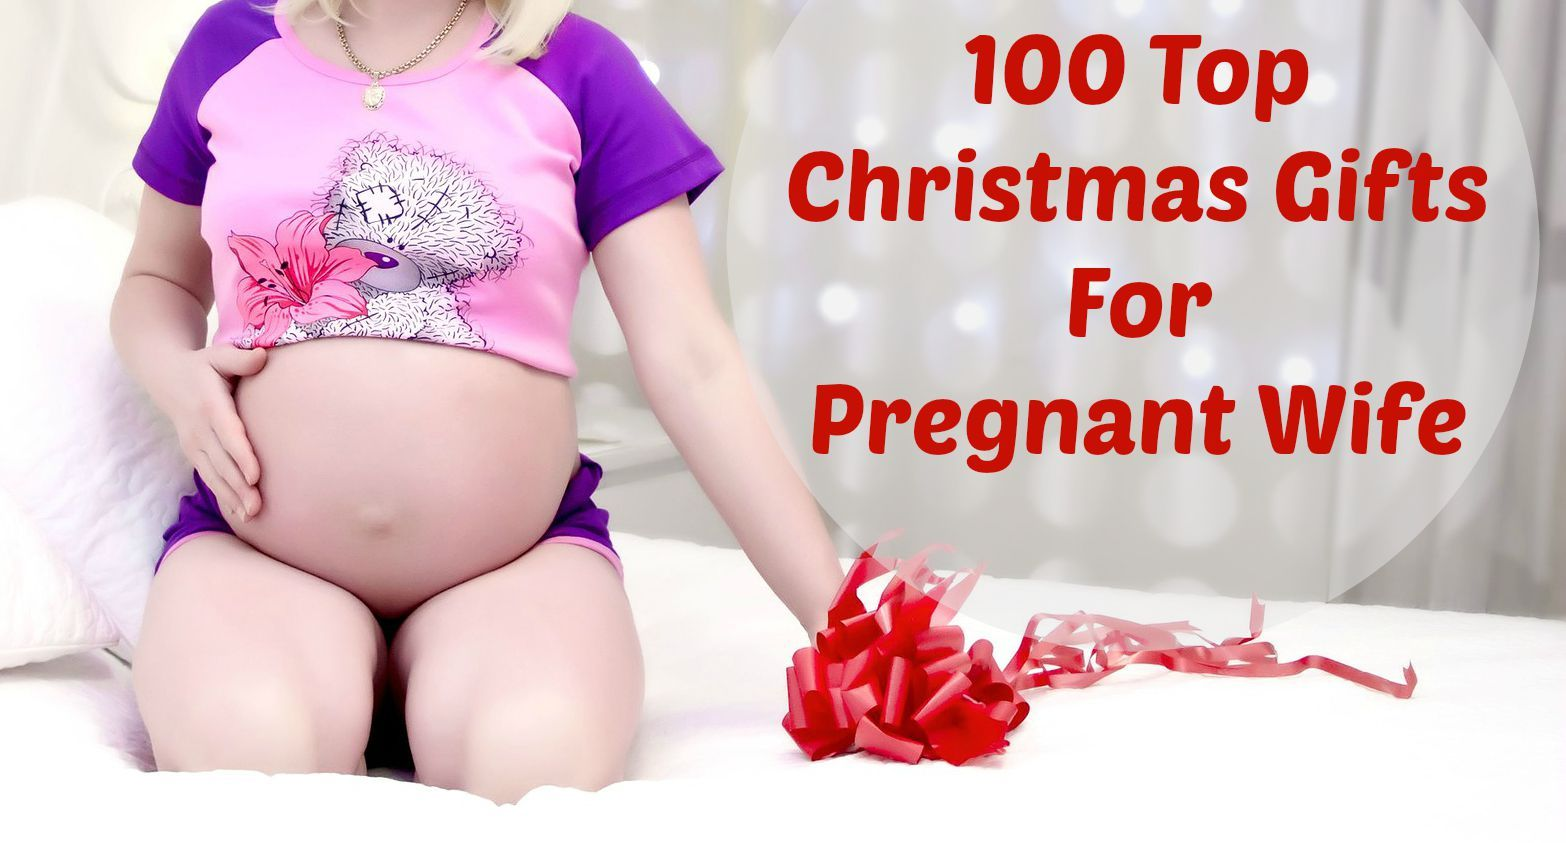 here you will find only the best christmas gifts for pregnant wife gathered in the course of my two year tracking on best ideas on this subject